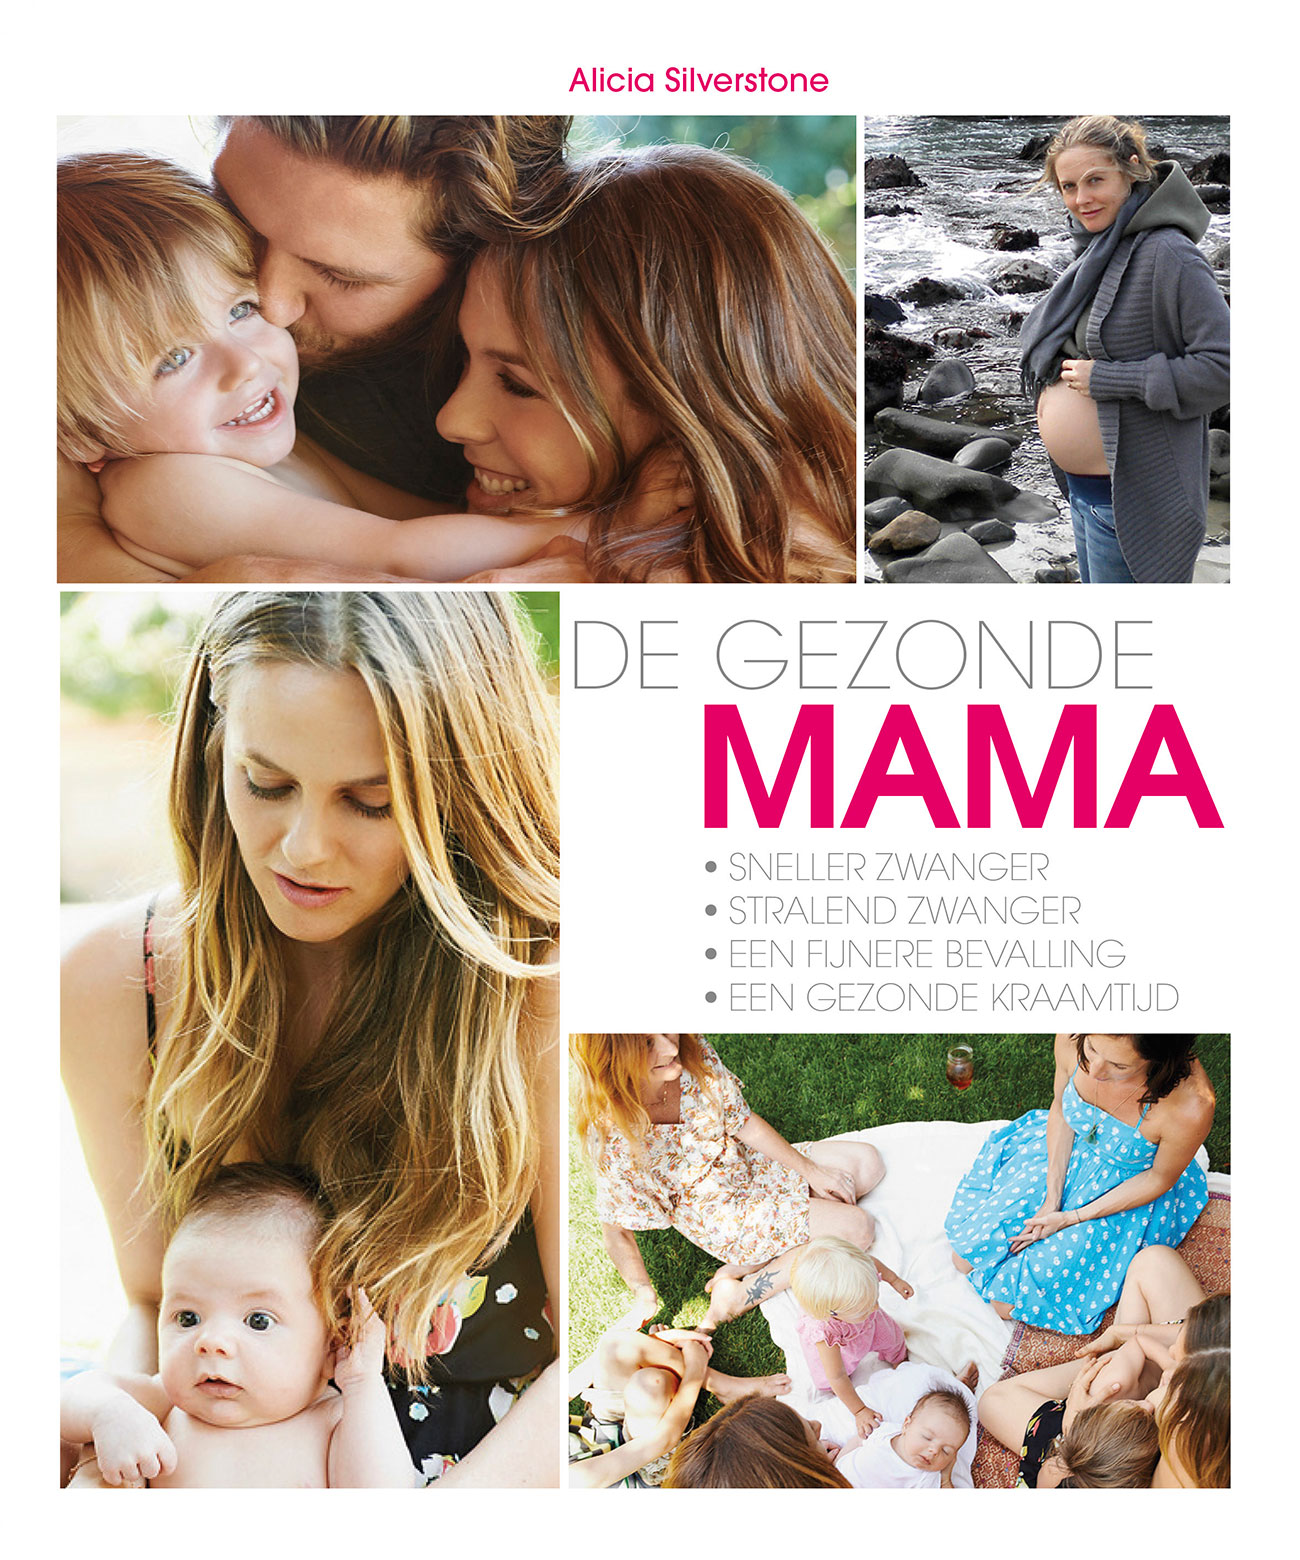 gezonde mama bookcover